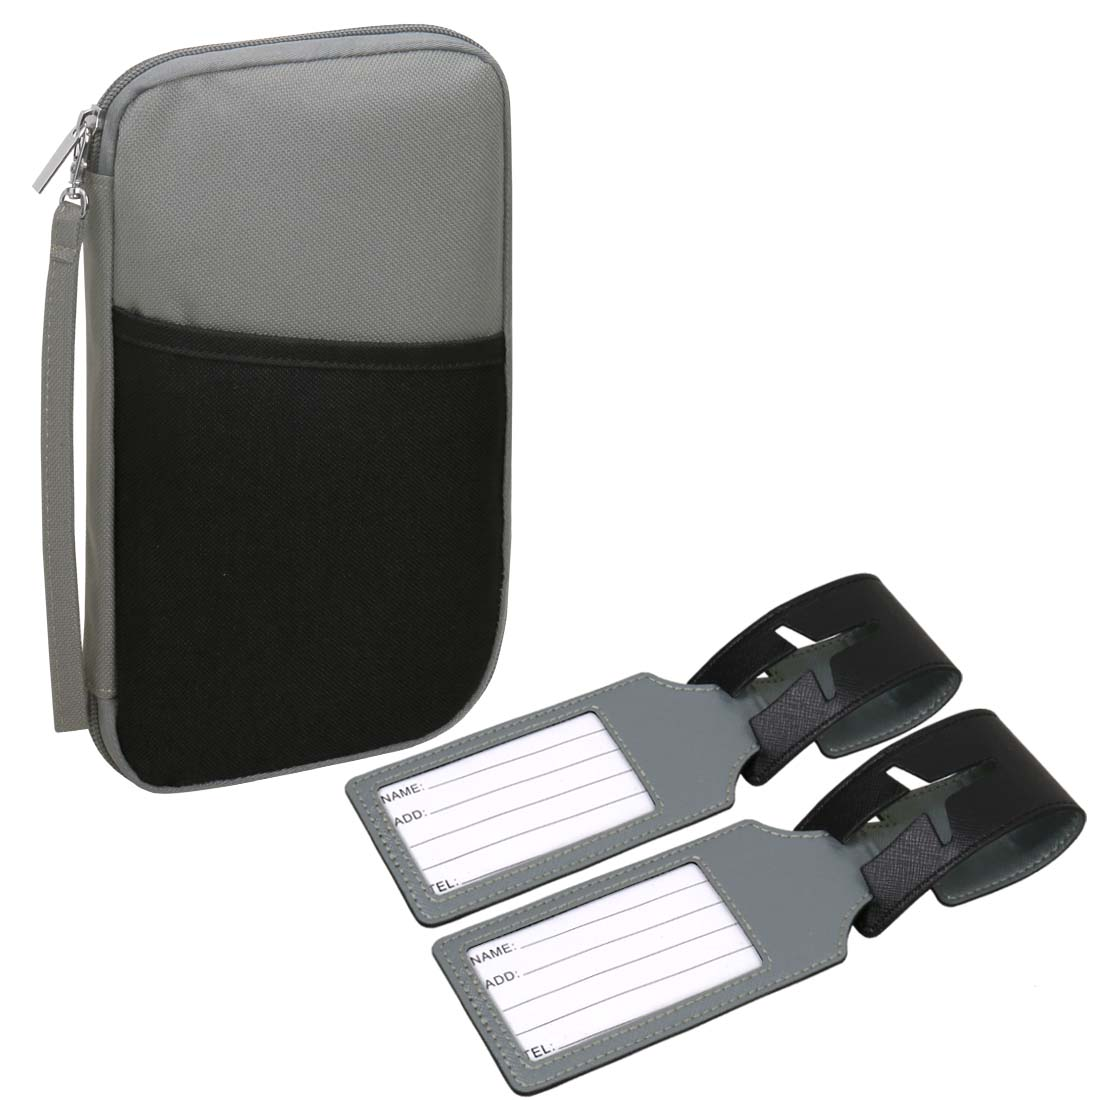 RoryTory RFID Travel Passport Holder Case Organizer with 2 Luggage Tags